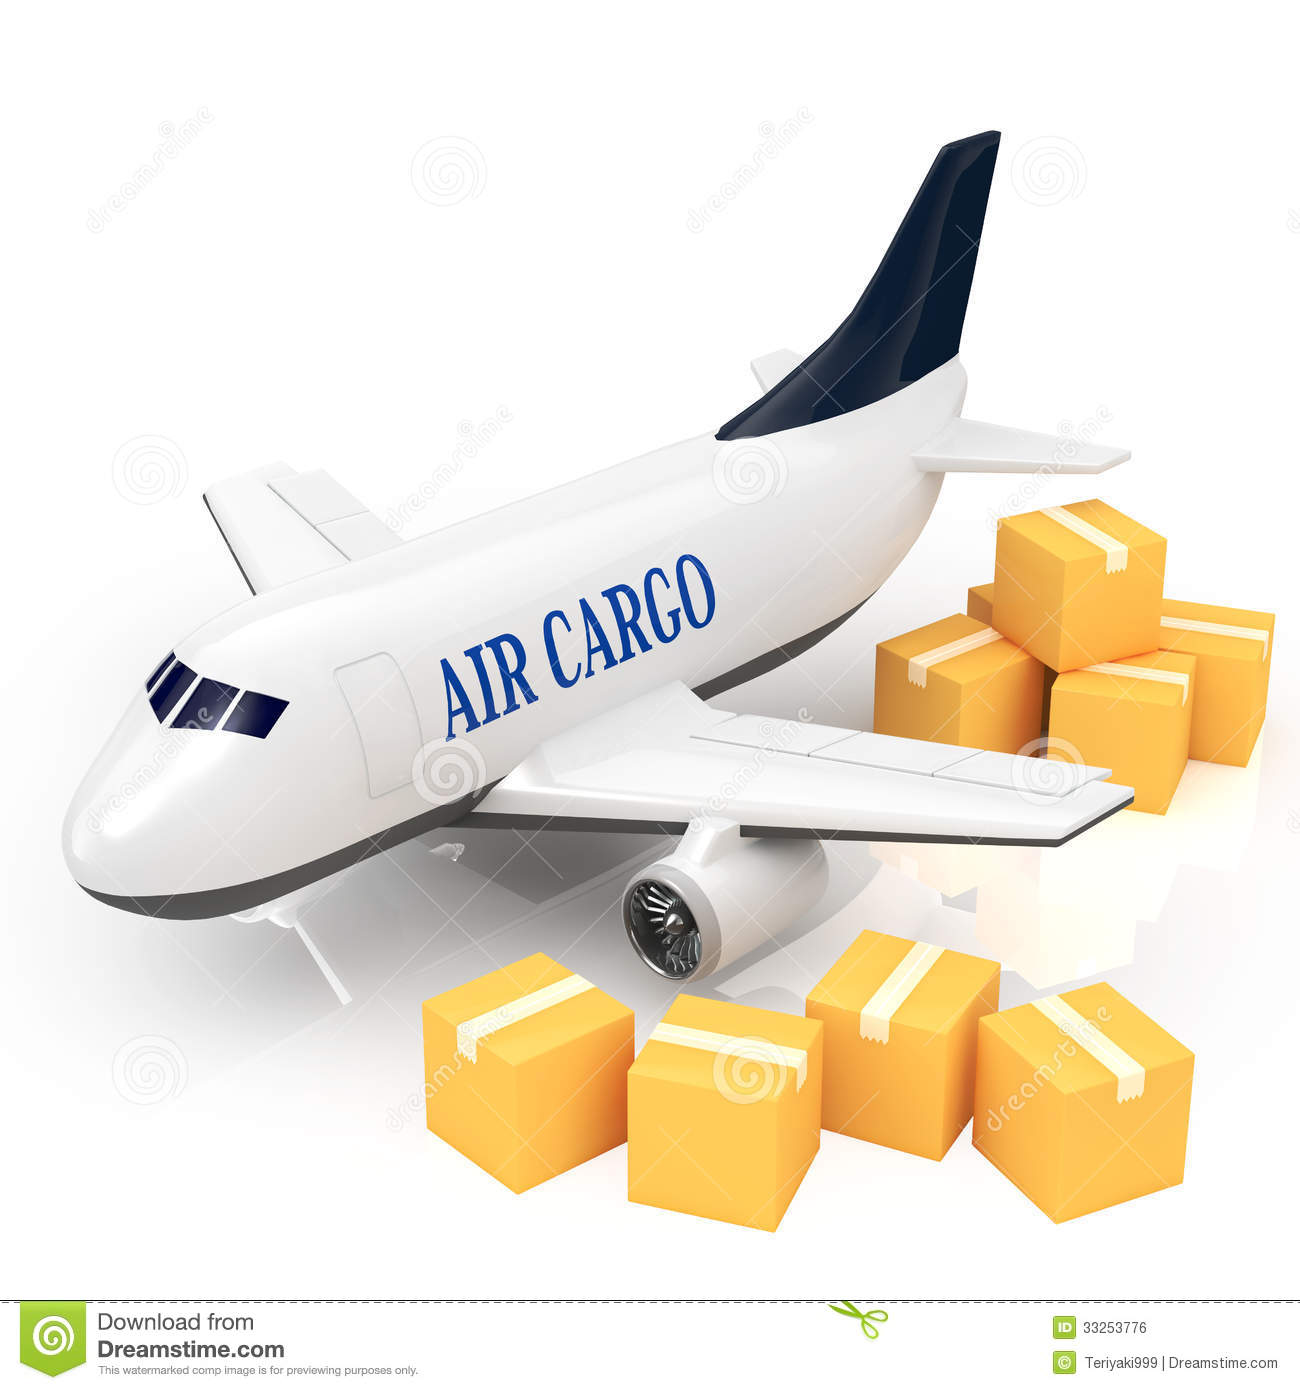 Cargo plane loading clipart royalty free stock Free cargo plane clipart - ClipartFest royalty free stock